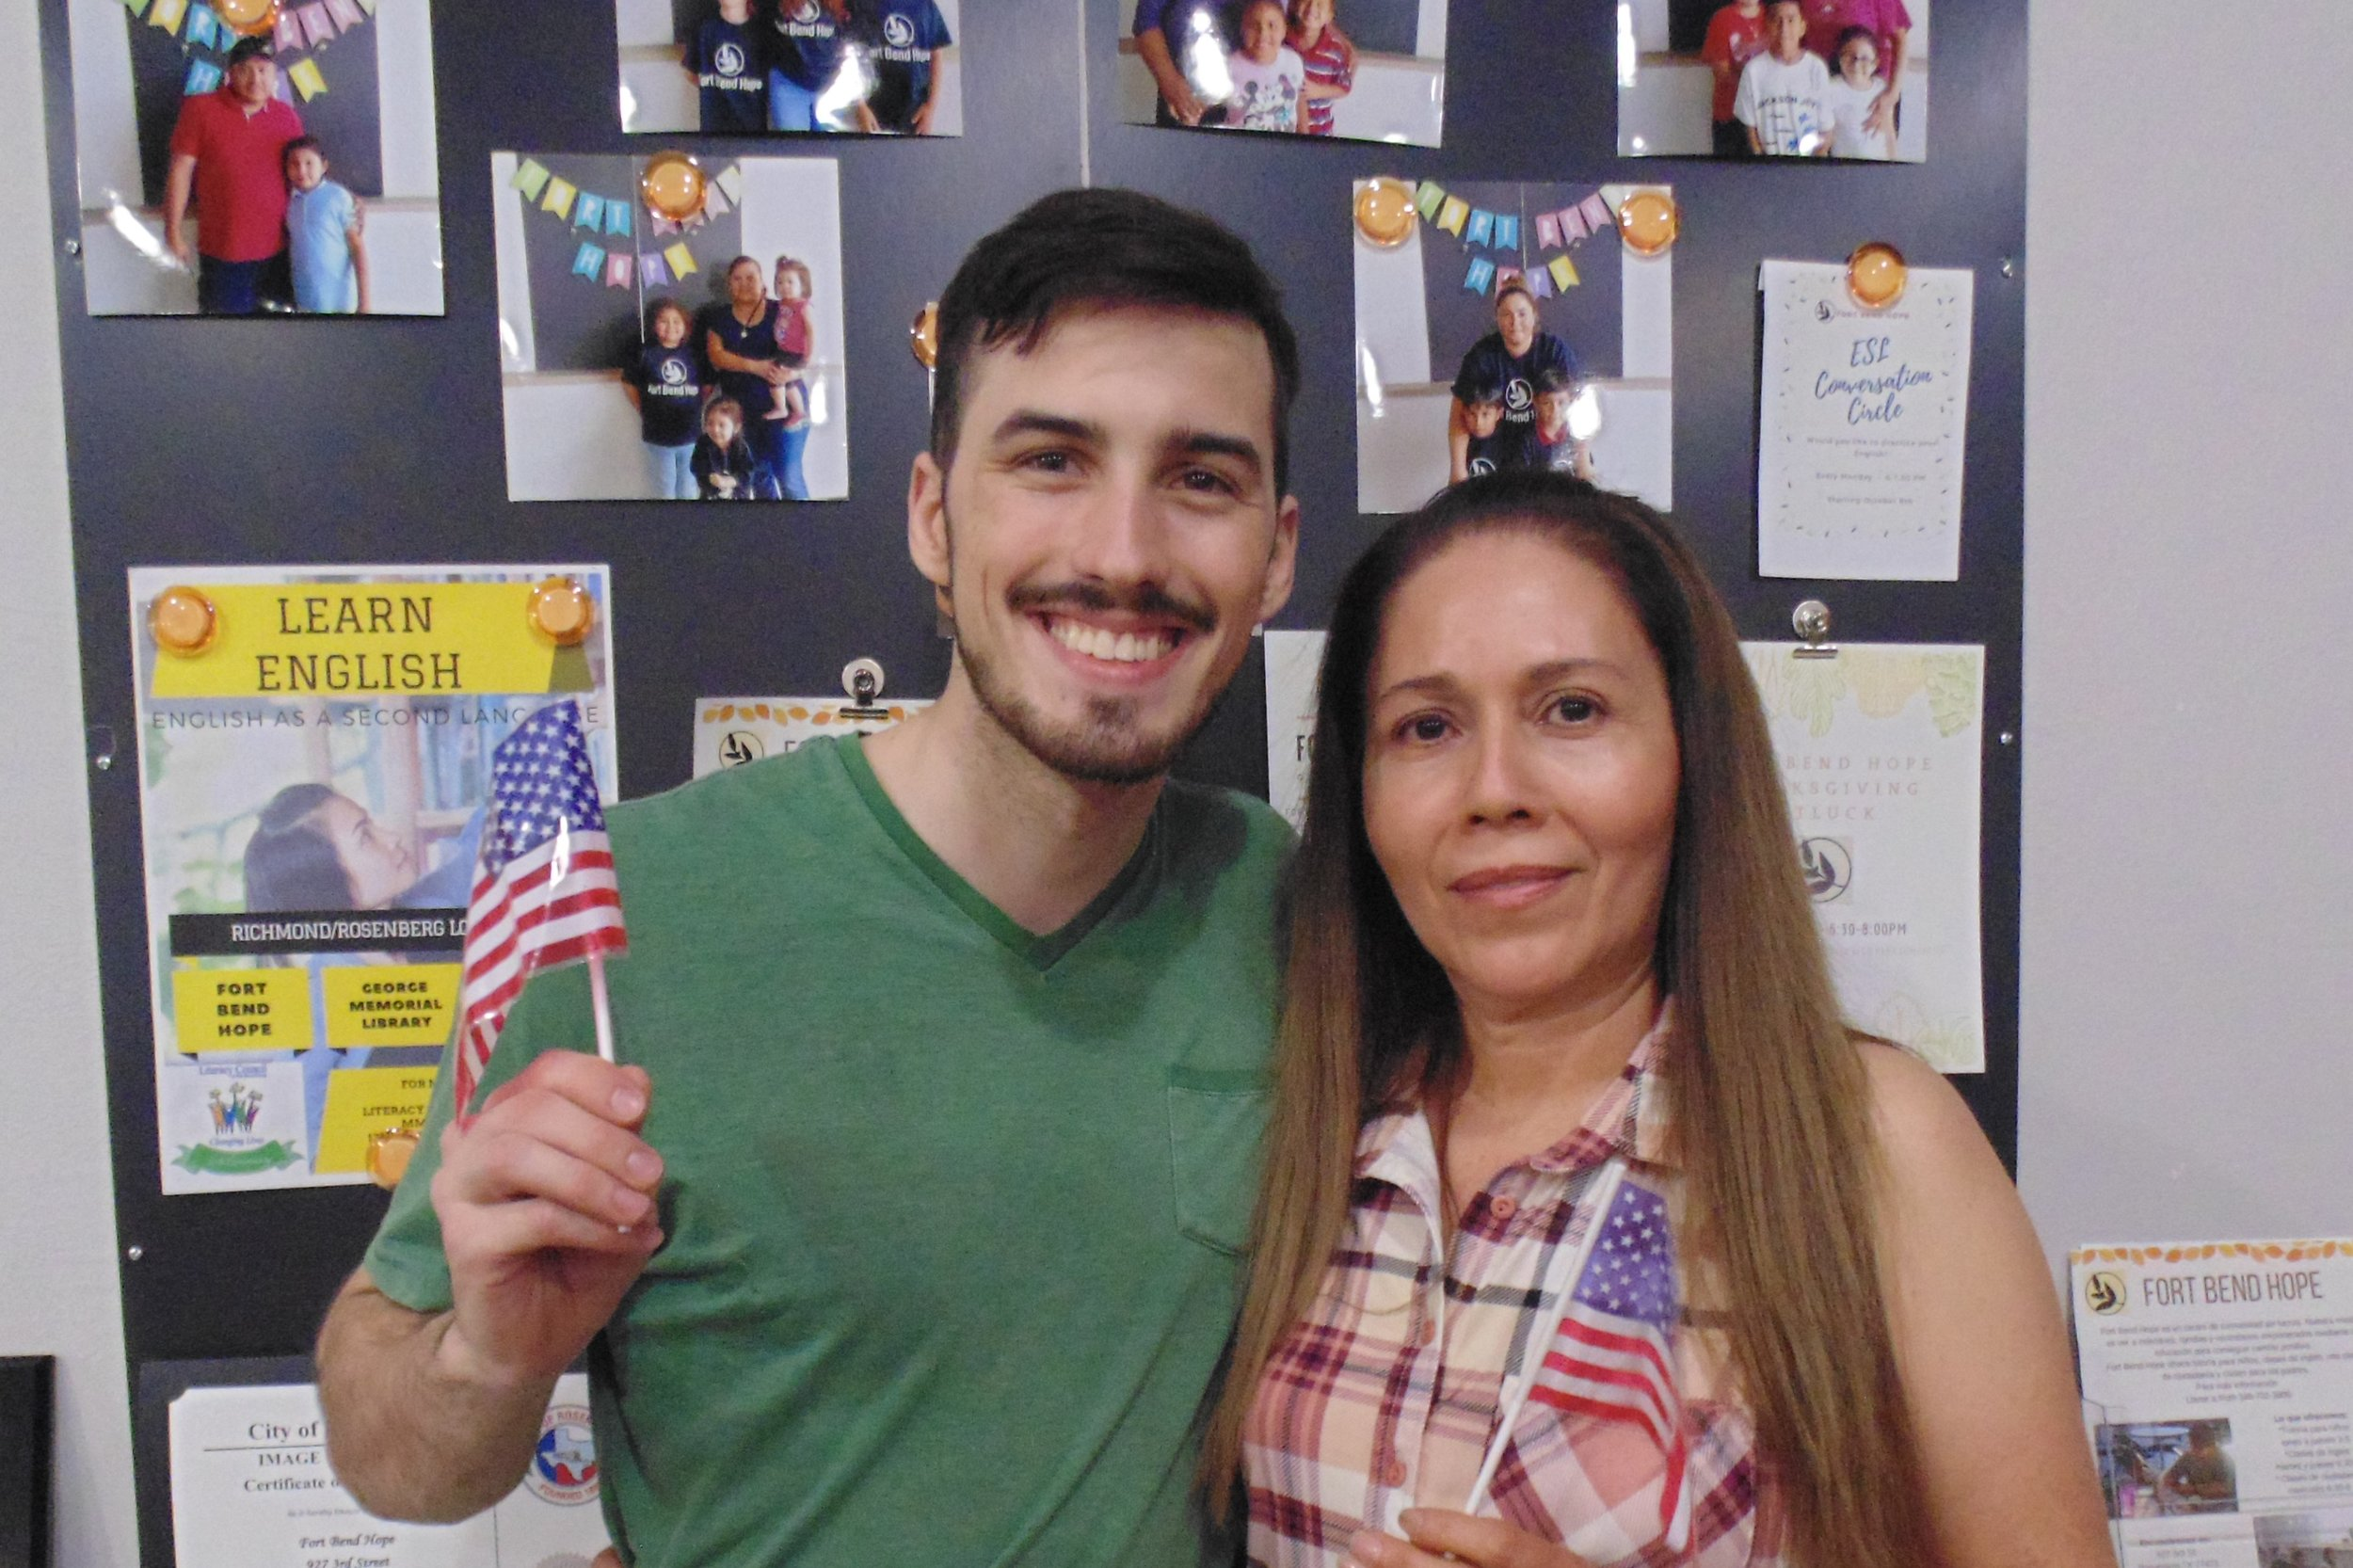 Silvia obtained her US Citizenship with the Literacy Council and Fort Bend Hope